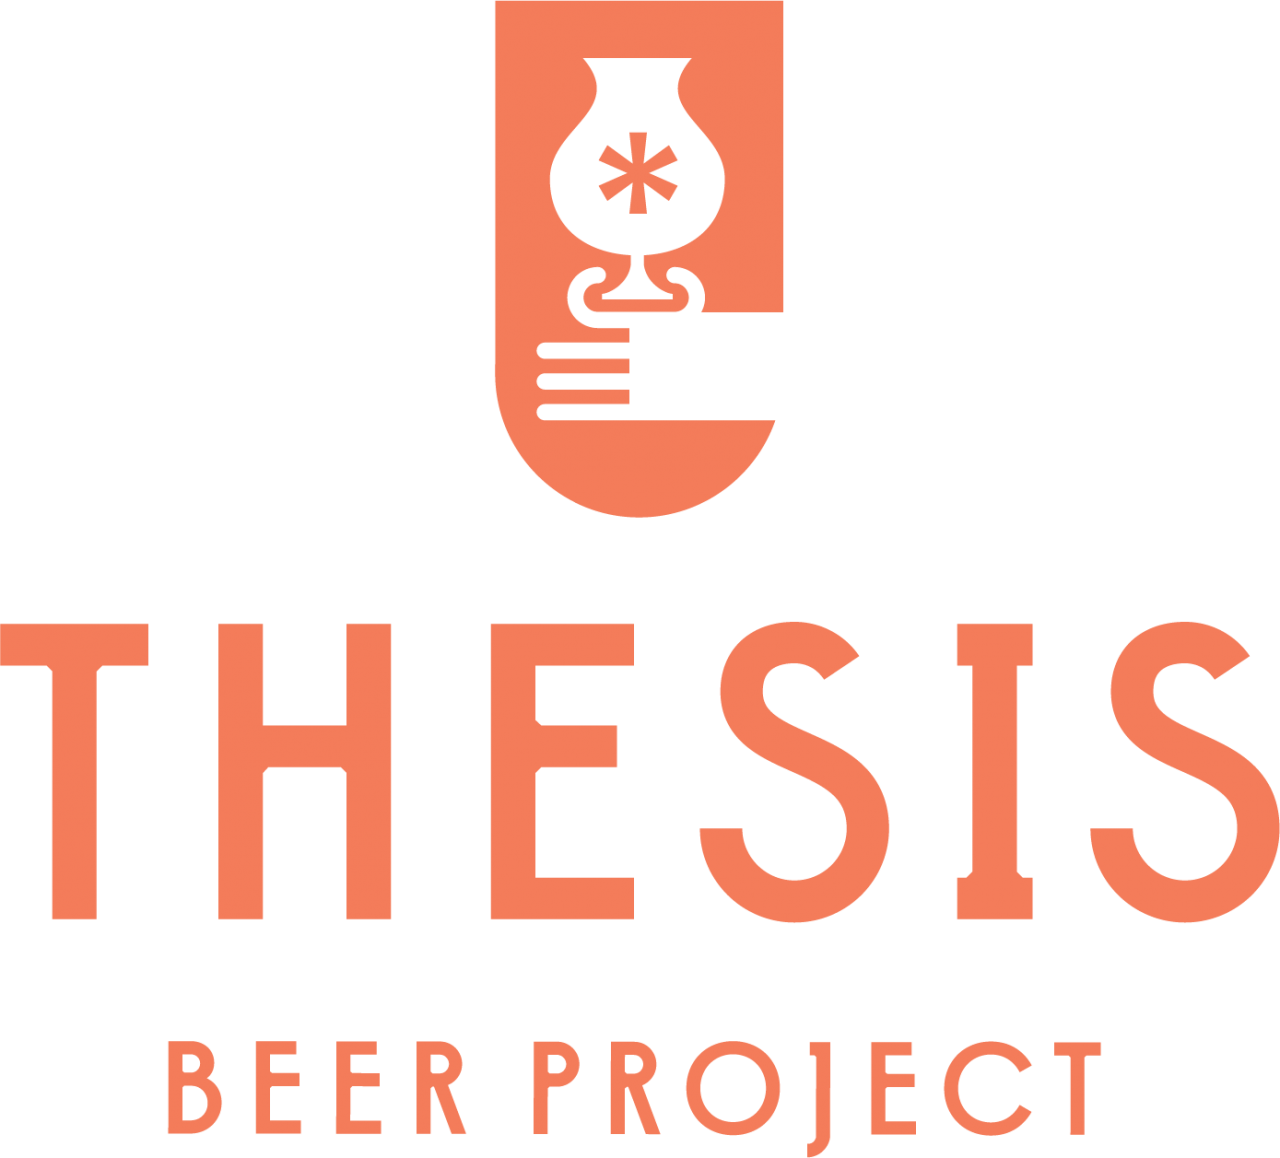 https://www.mncraftbrew.org/wp-content/uploads/2021/01/thesis_beer_project_logo-1280x1158.png